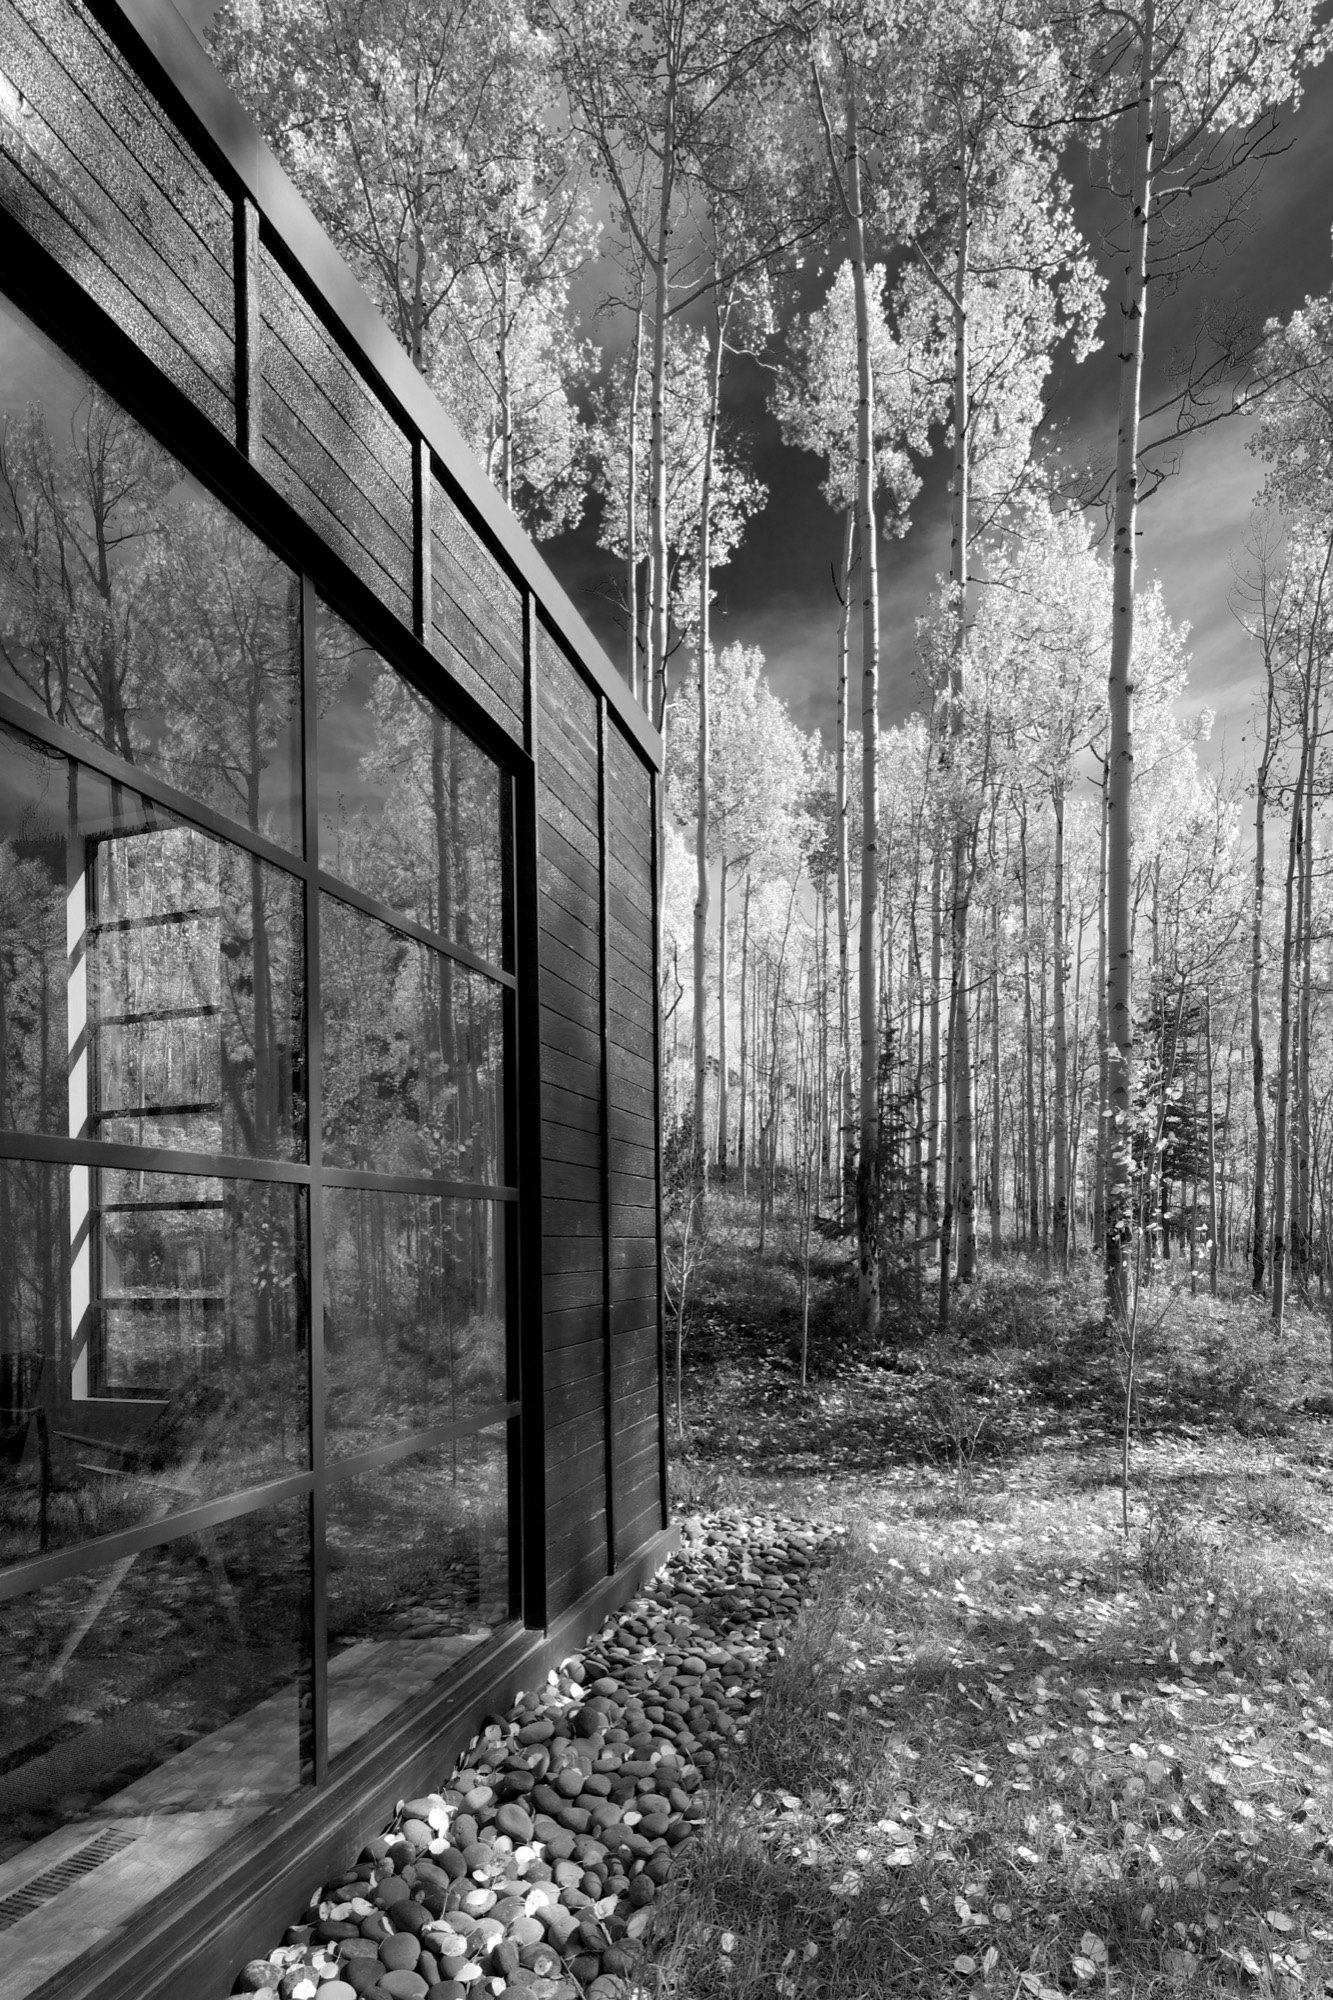 Exterior details reference the immense verticality of the aspen trees / Photo by Greg Watts